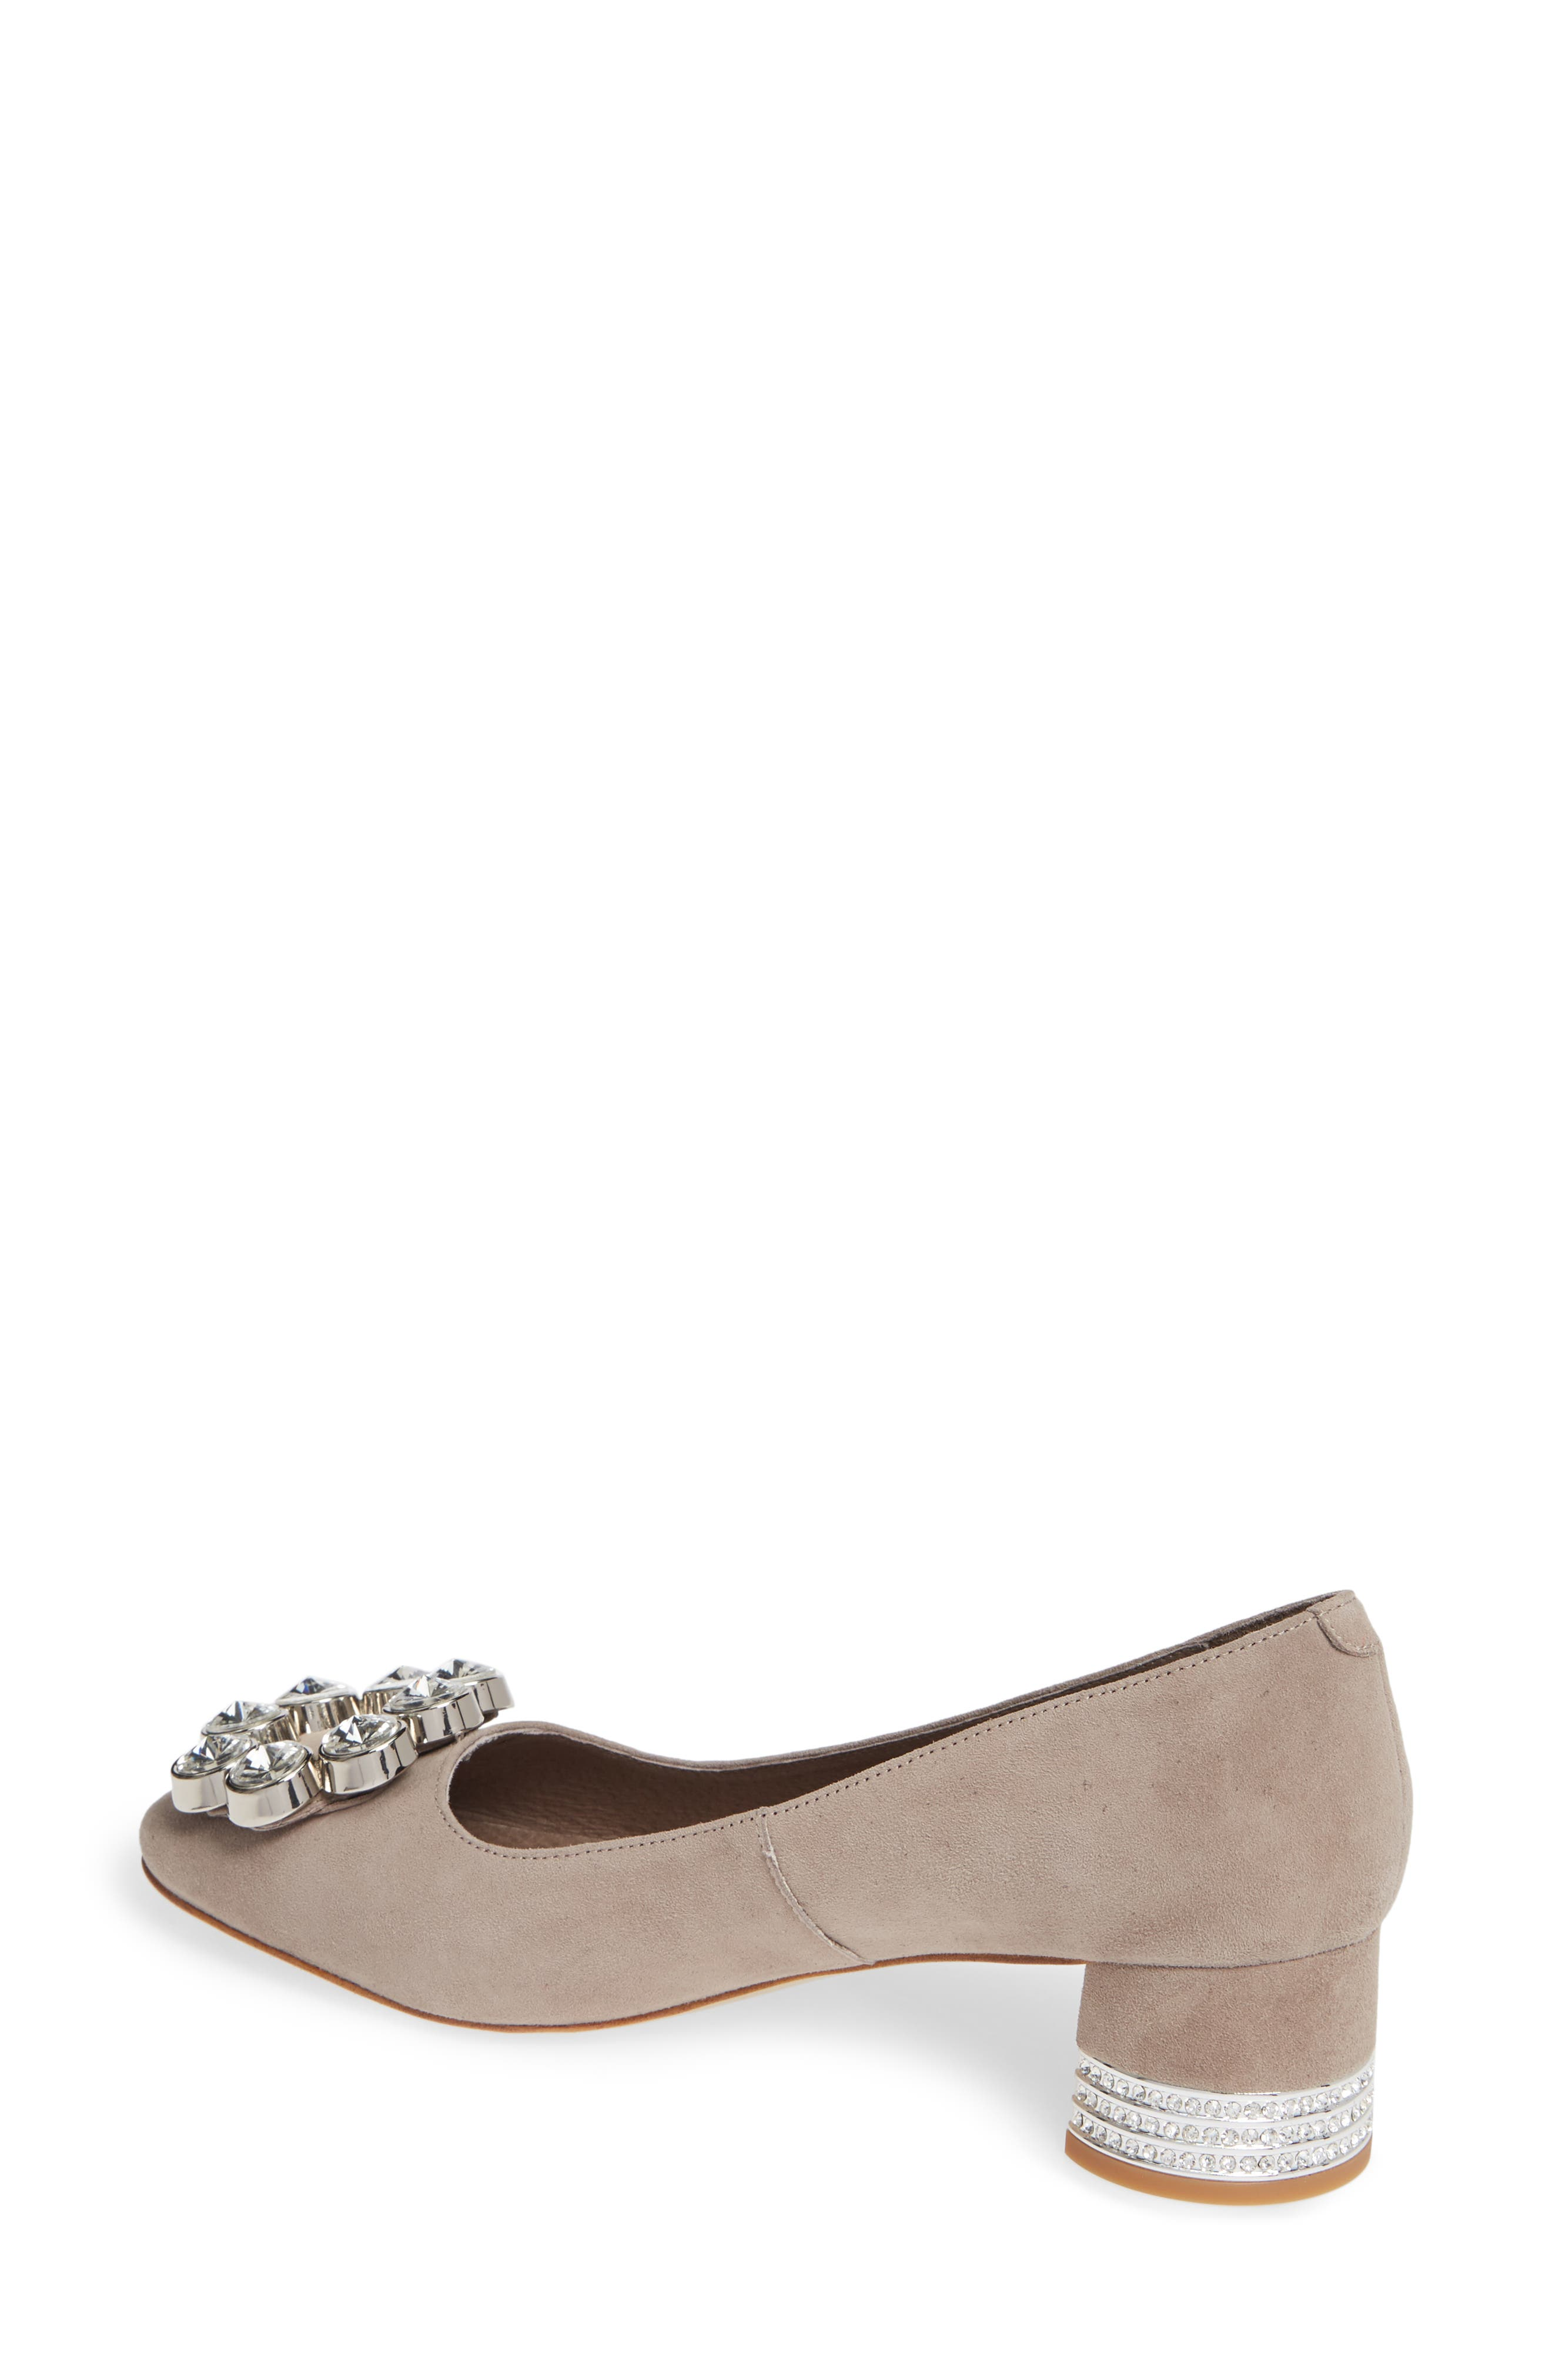 JEFFREY CAMPBELL, Carys Pump, Alternate thumbnail 2, color, TAUPE SUEDE